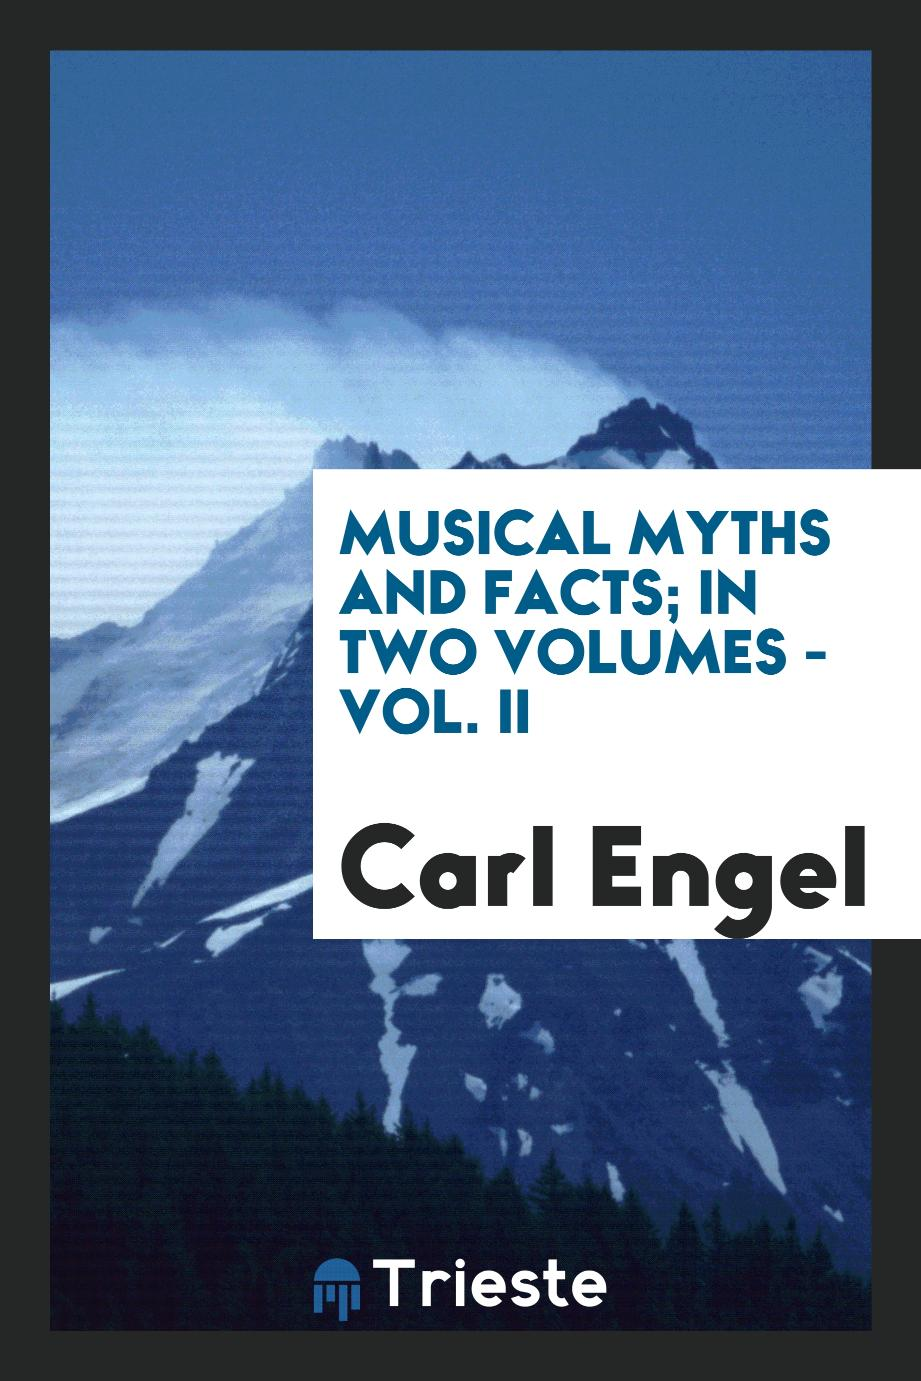 Musical myths and facts; In two volumes - Vol. II